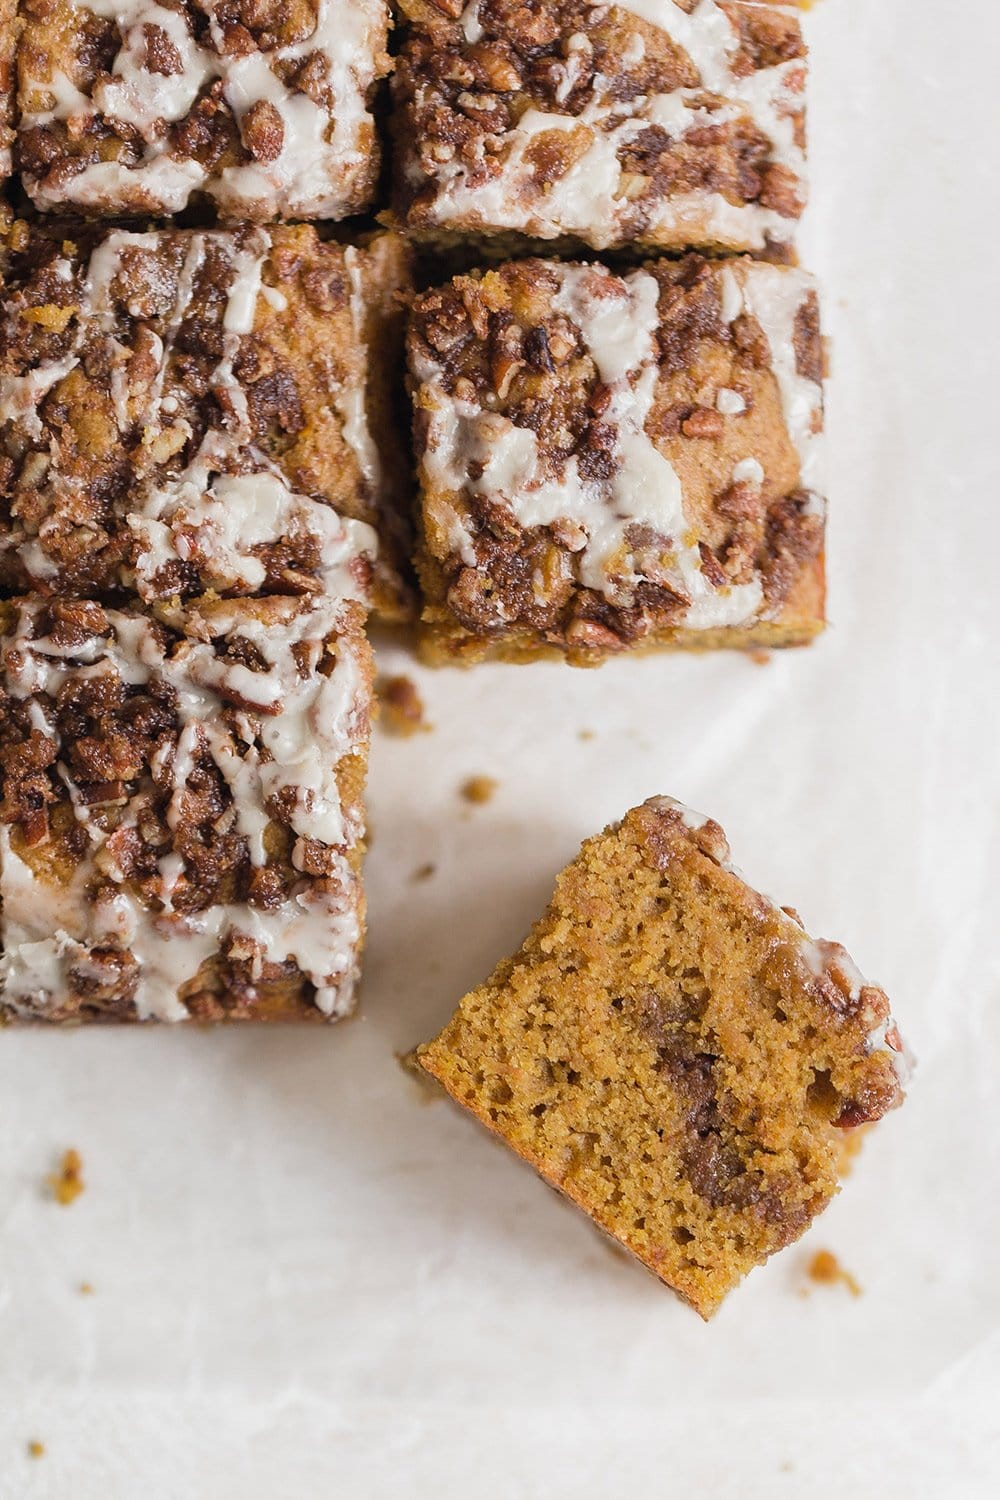 Homemade pumpkin spice coffee cake with pecan streusel and maple icing